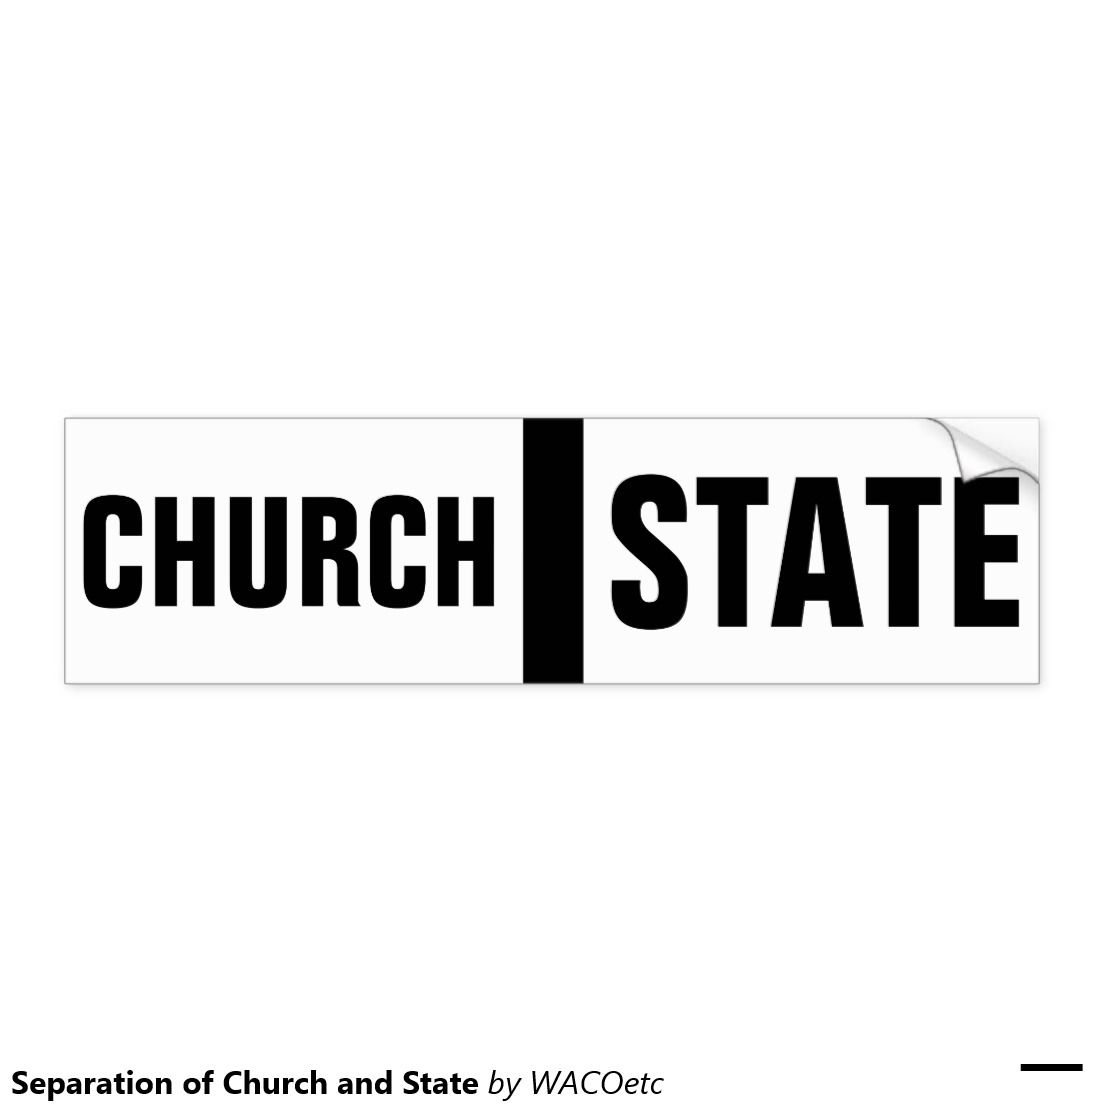 Separation Of Church And State Car Bumper Sticker Bumper Stickers Car Bumper Stickers Stickers [ 1104 x 1104 Pixel ]